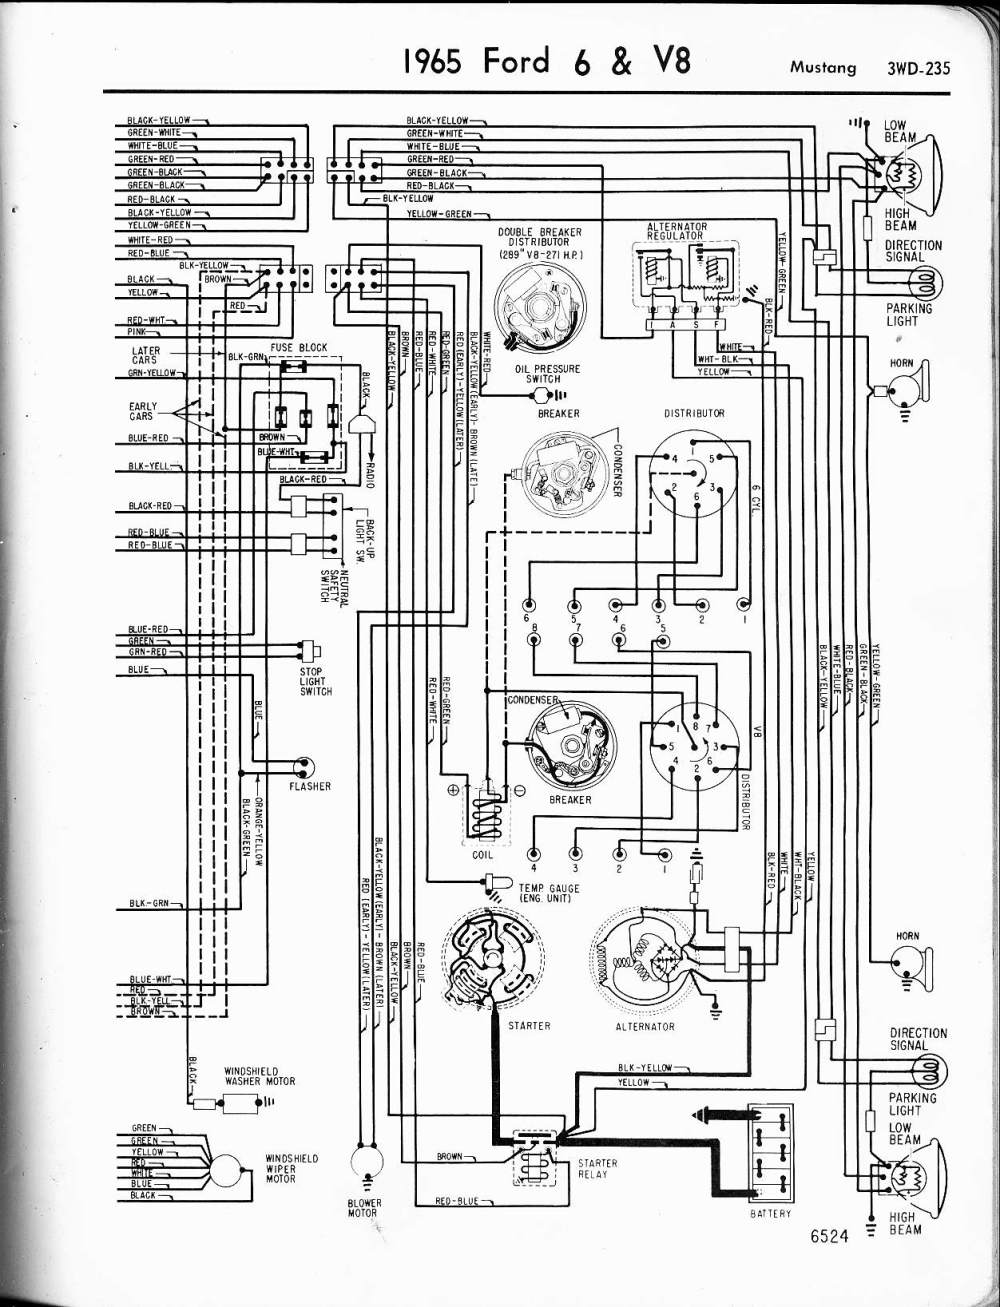 medium resolution of 1969 ford alternator wiring schematic simple wiring diagramford diagrams 1969 ford charging system schematic 1969 ford